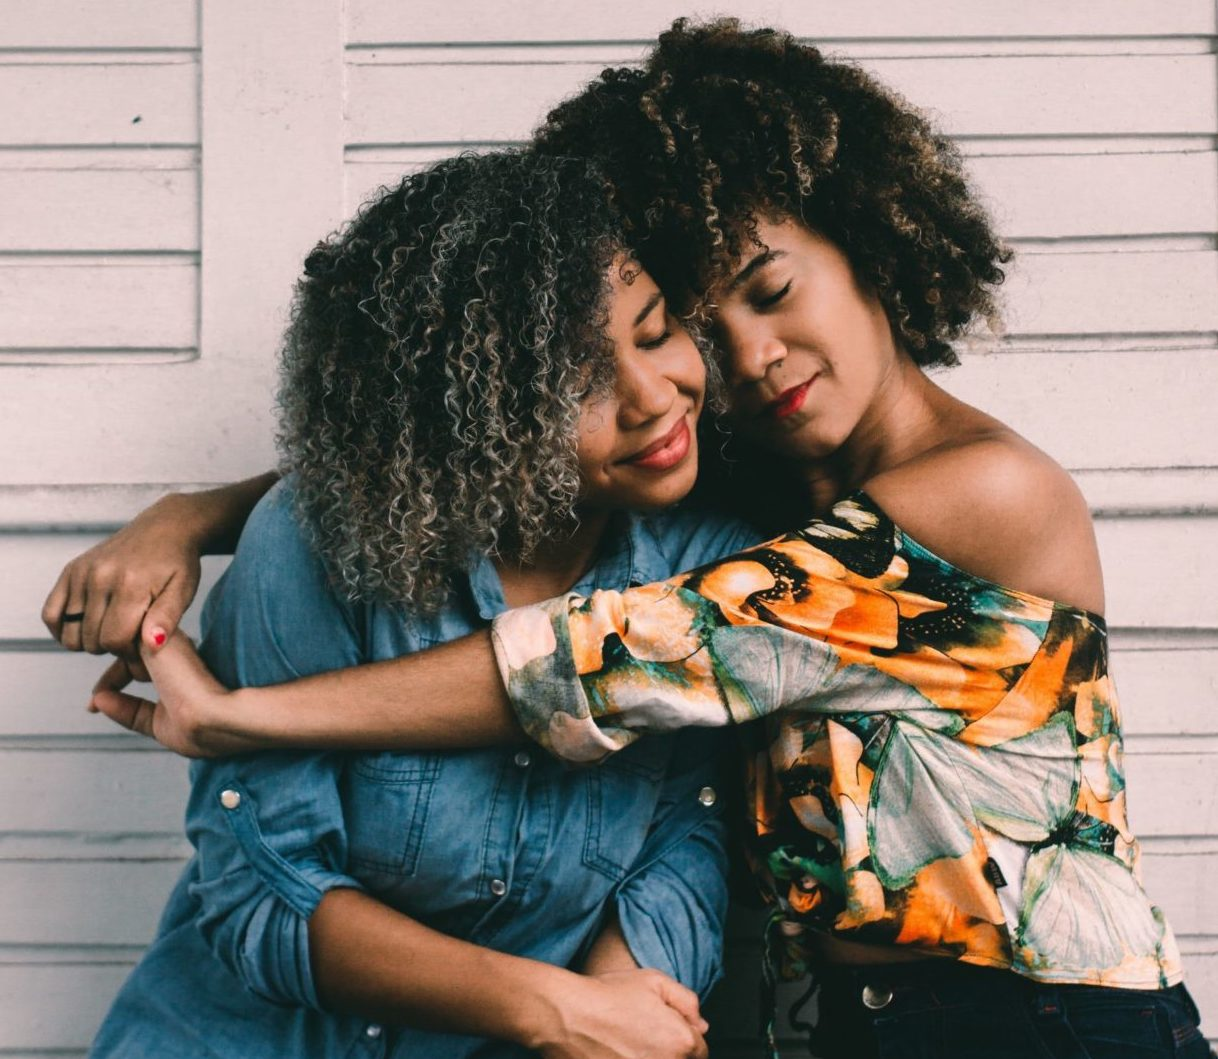 How To Be A Supportive Friend, Or Rather, How To NOT Be Hurtful When Someone You Love Is Hurting 3